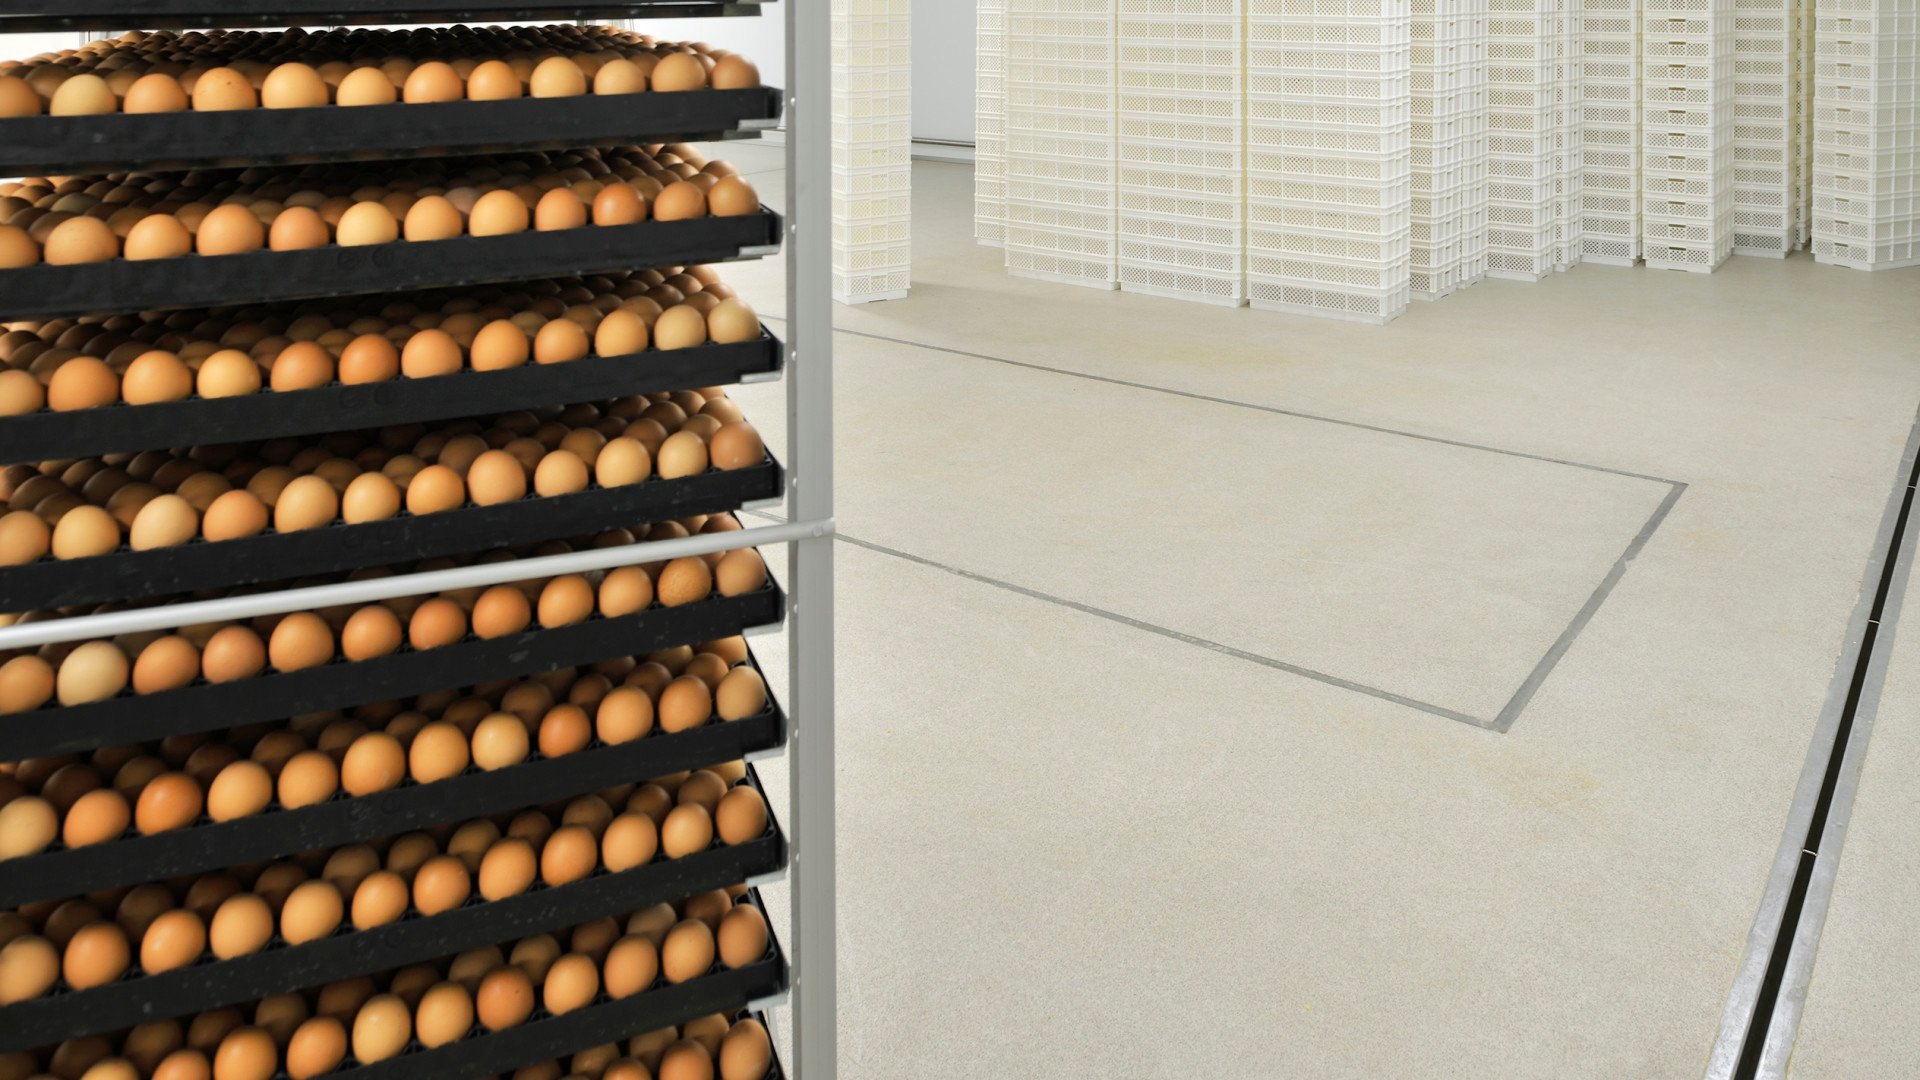 poultry flooring systems - Pluriton Broederij Afferden Bolidtop 700